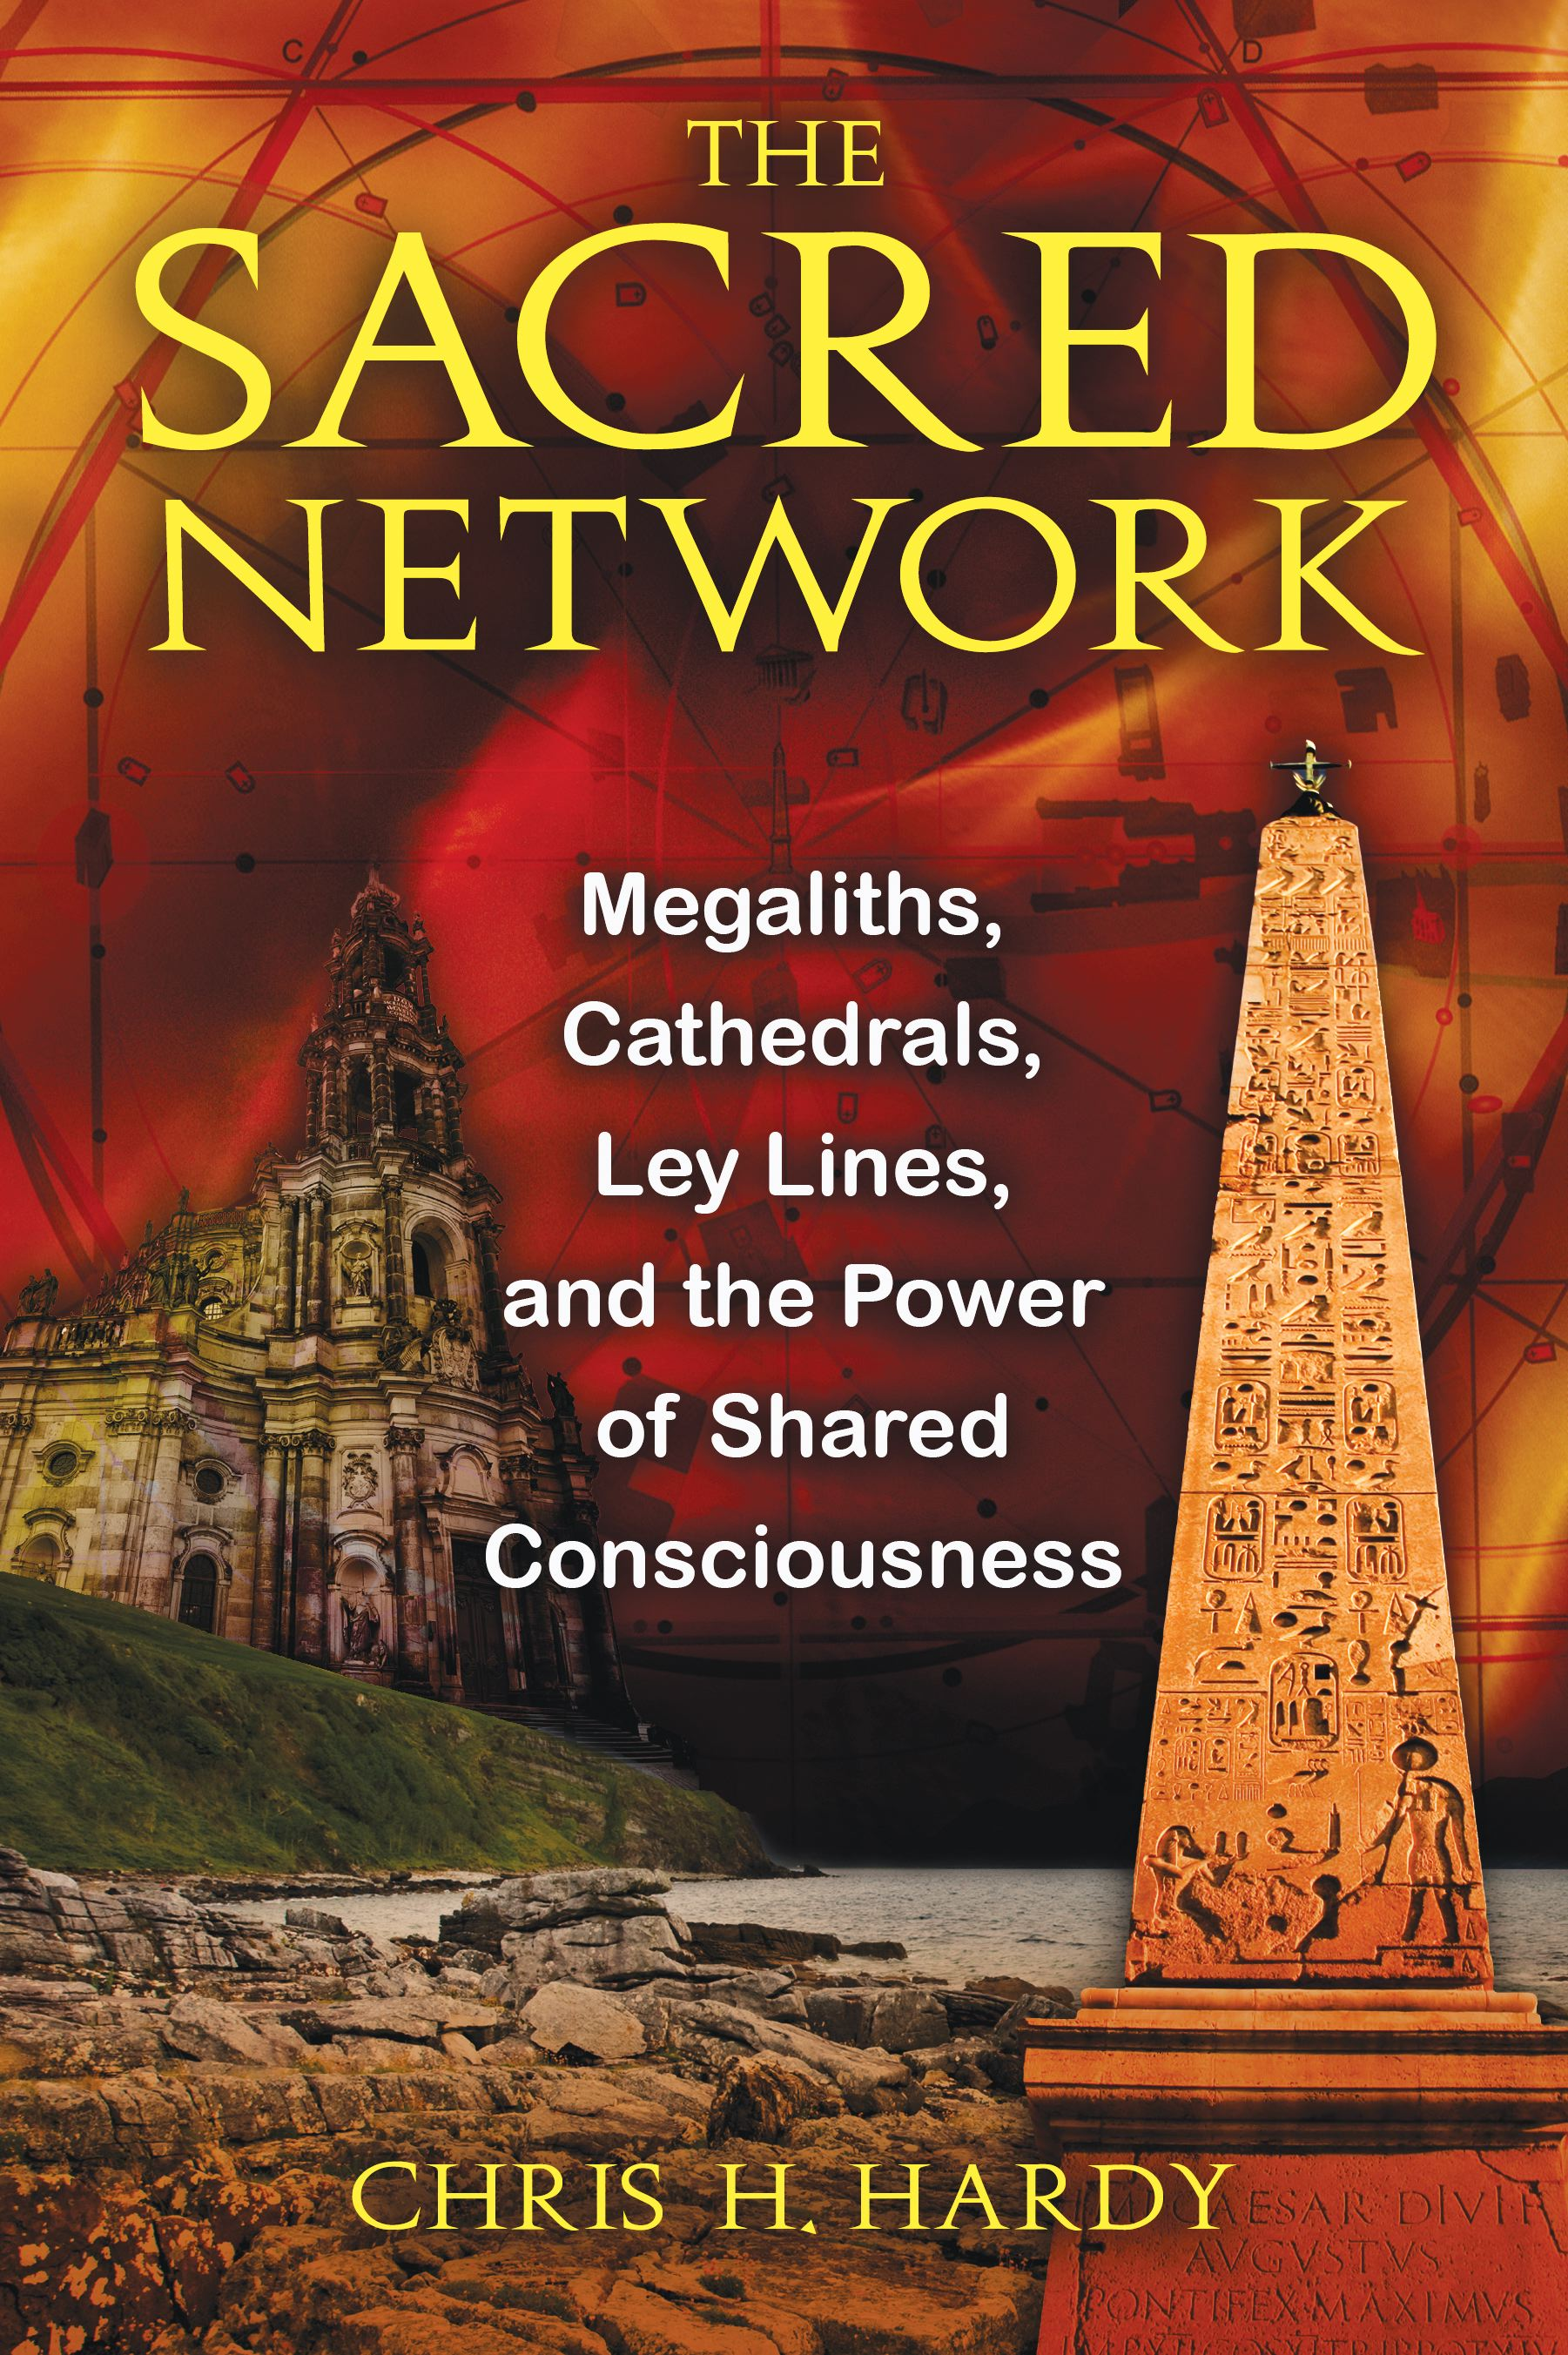 The sacred network 9781594773815 hr